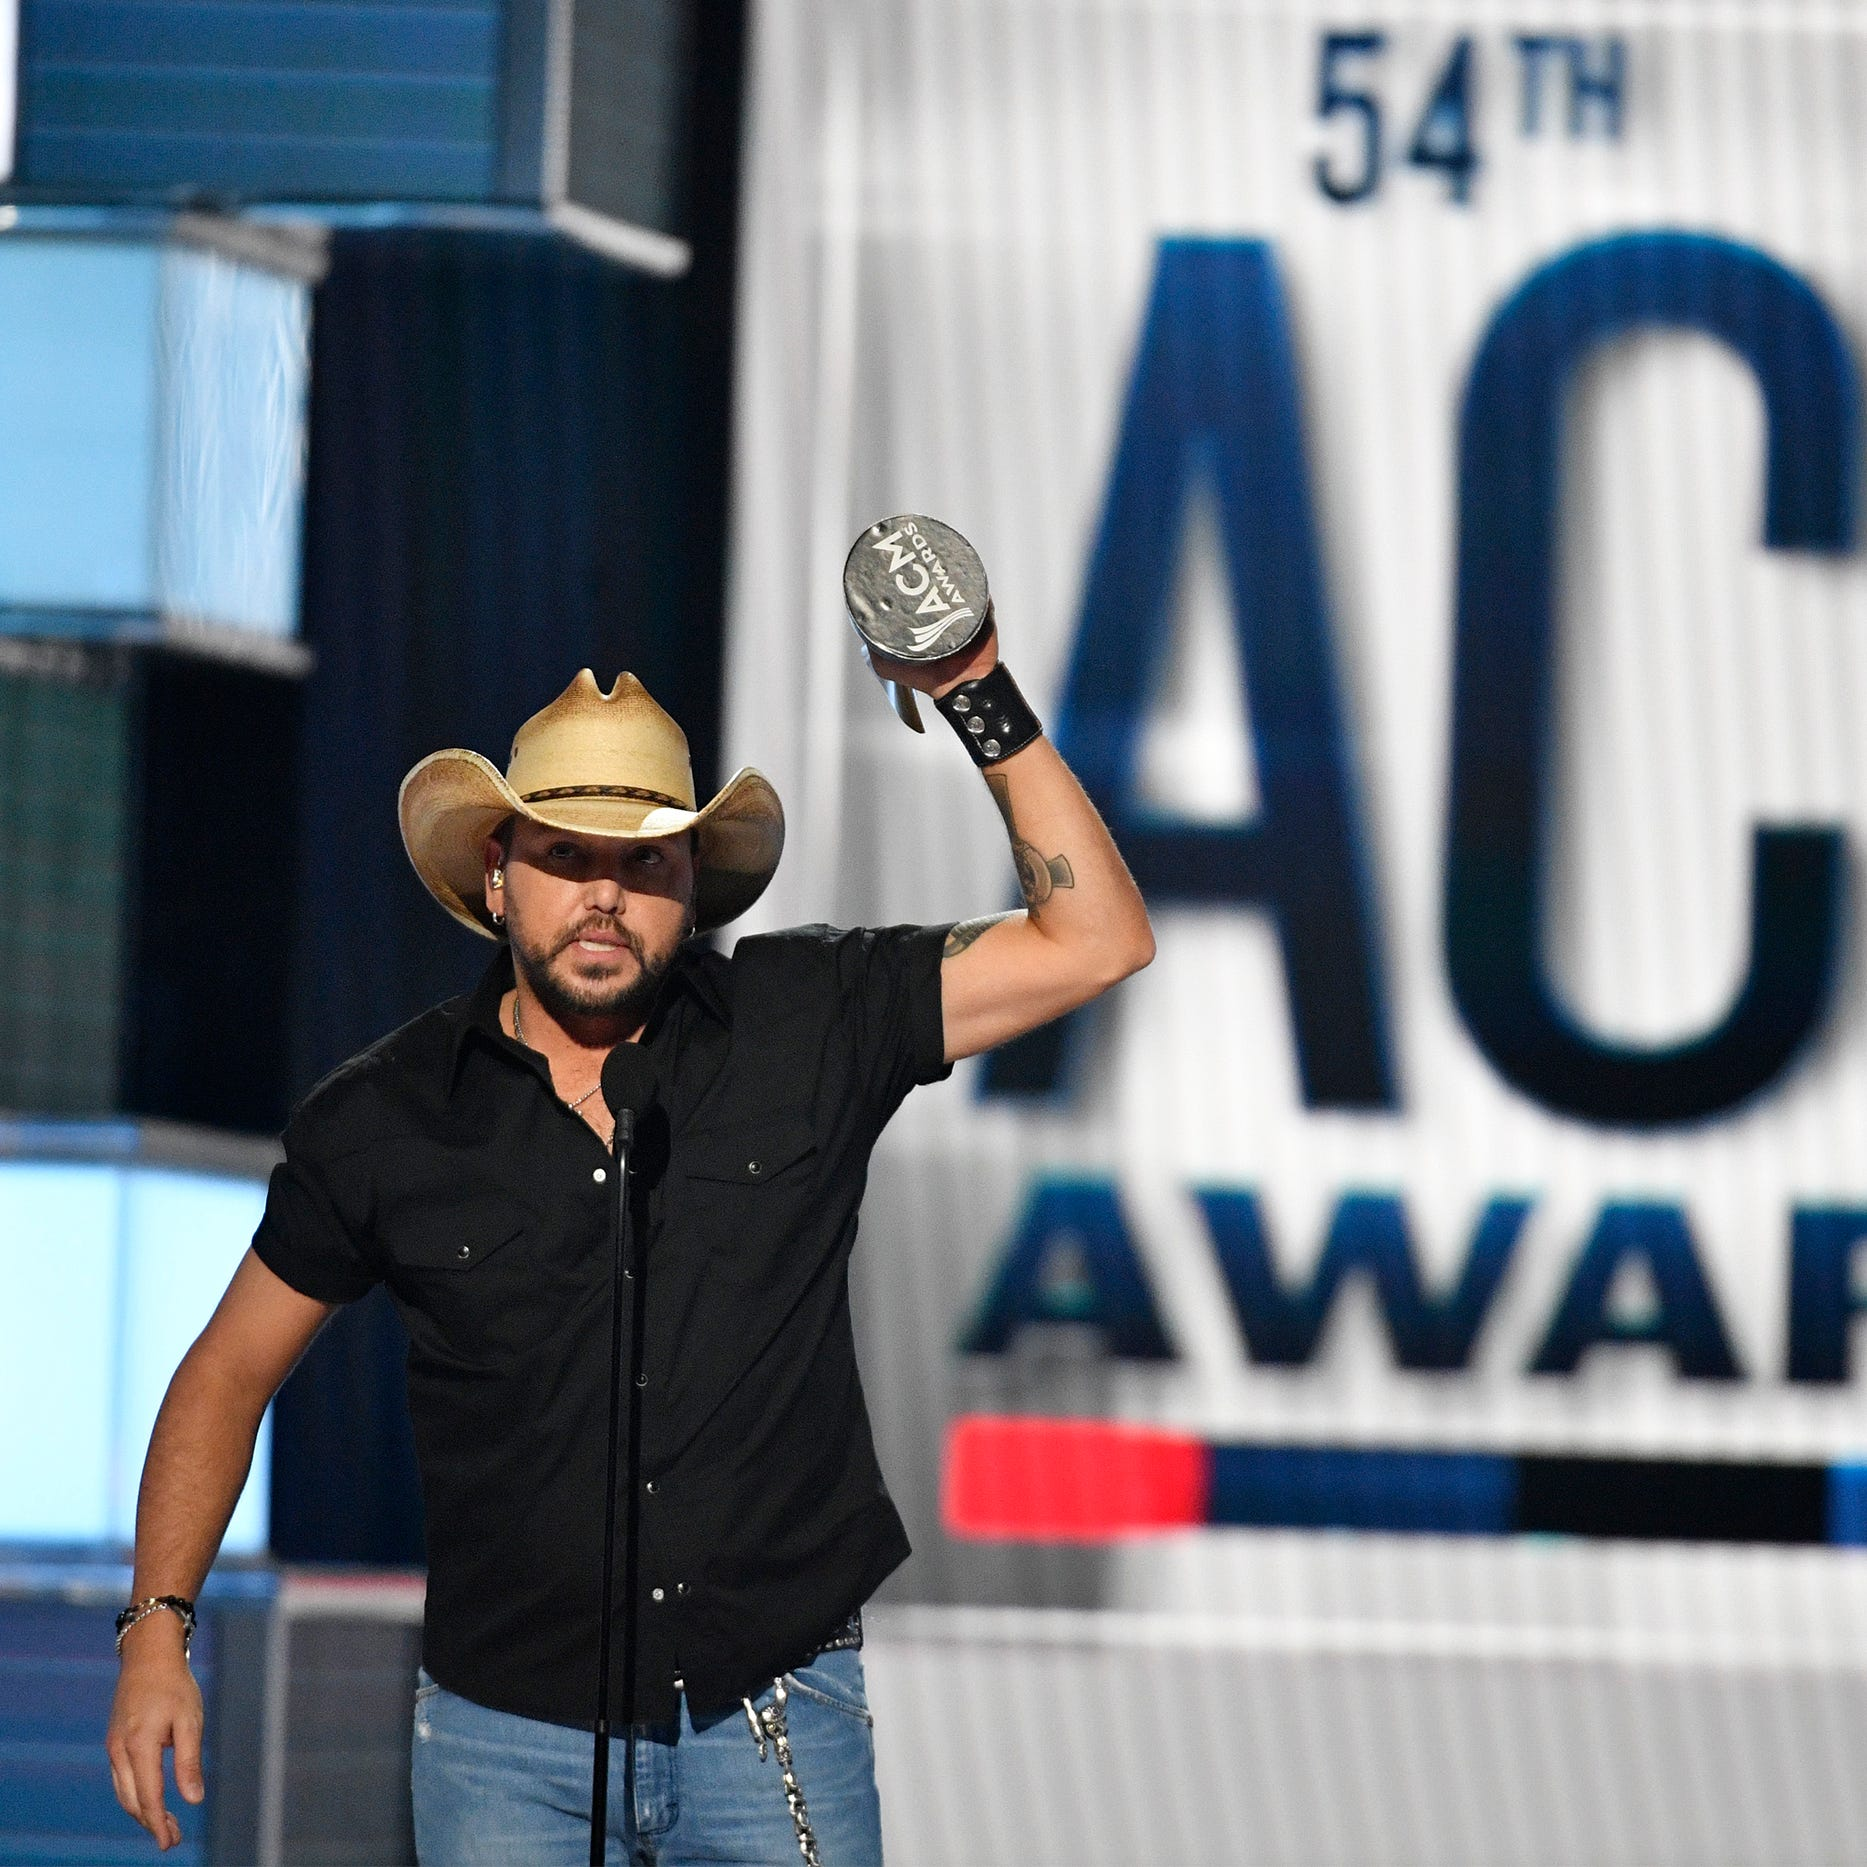 ACM Awards 2019: The winners list